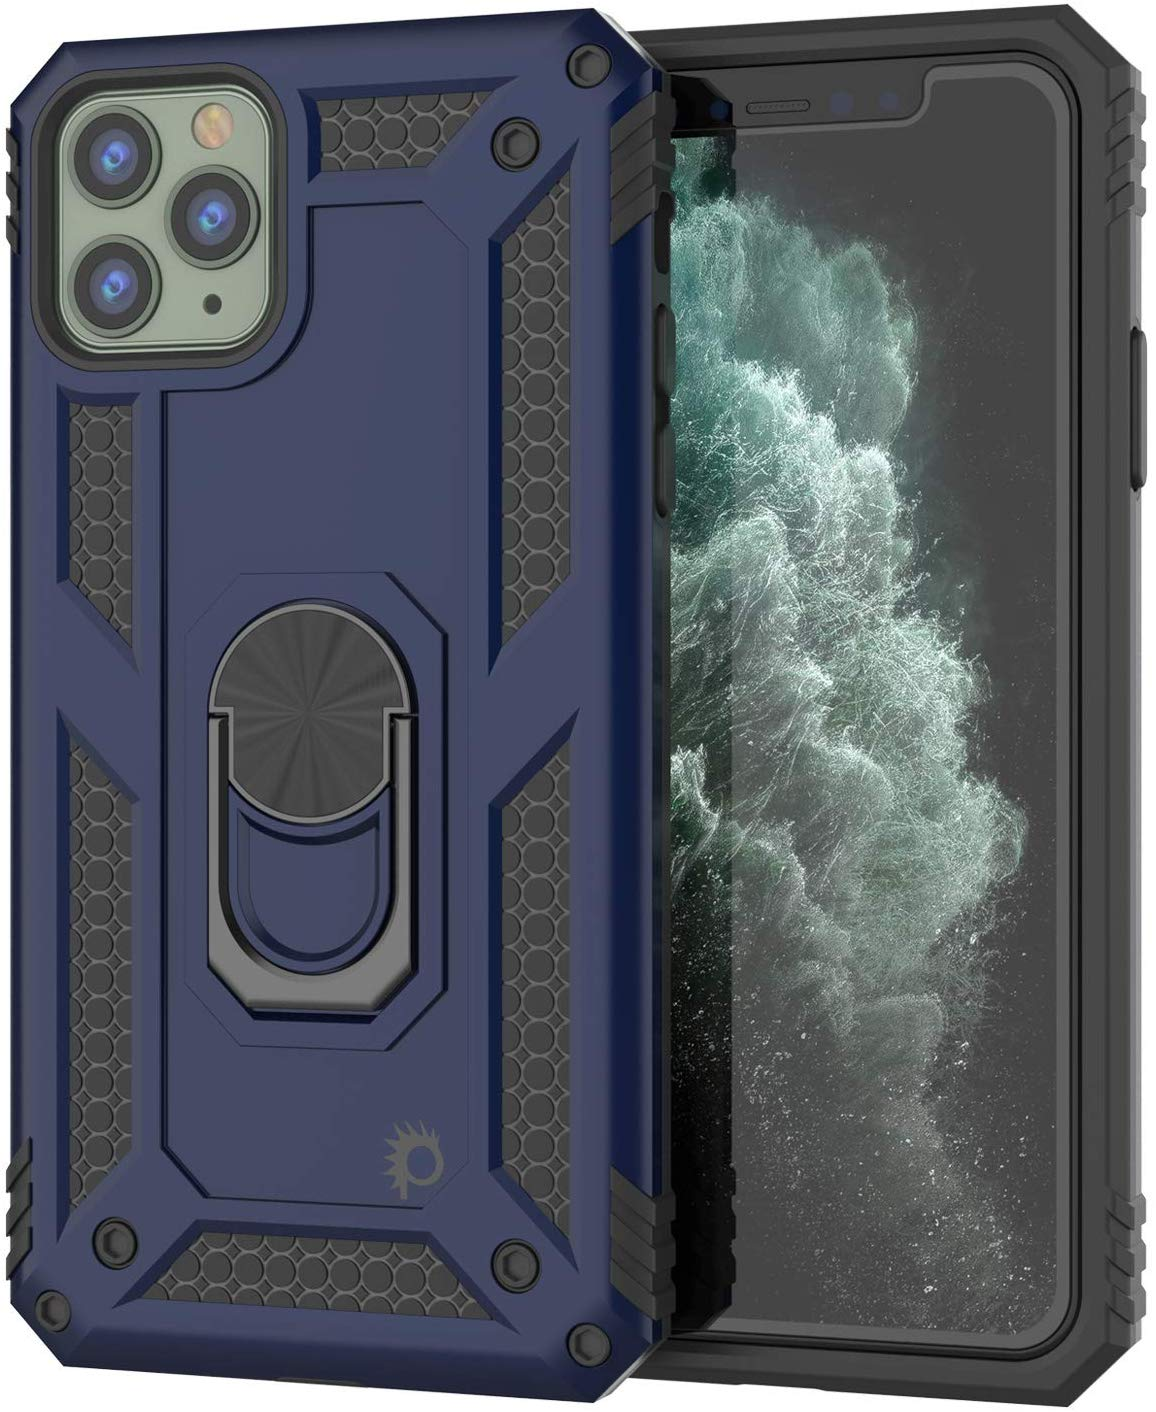 Apple iPhone 11 Pro Max Punkcase Armor Military Case Navy-Blue